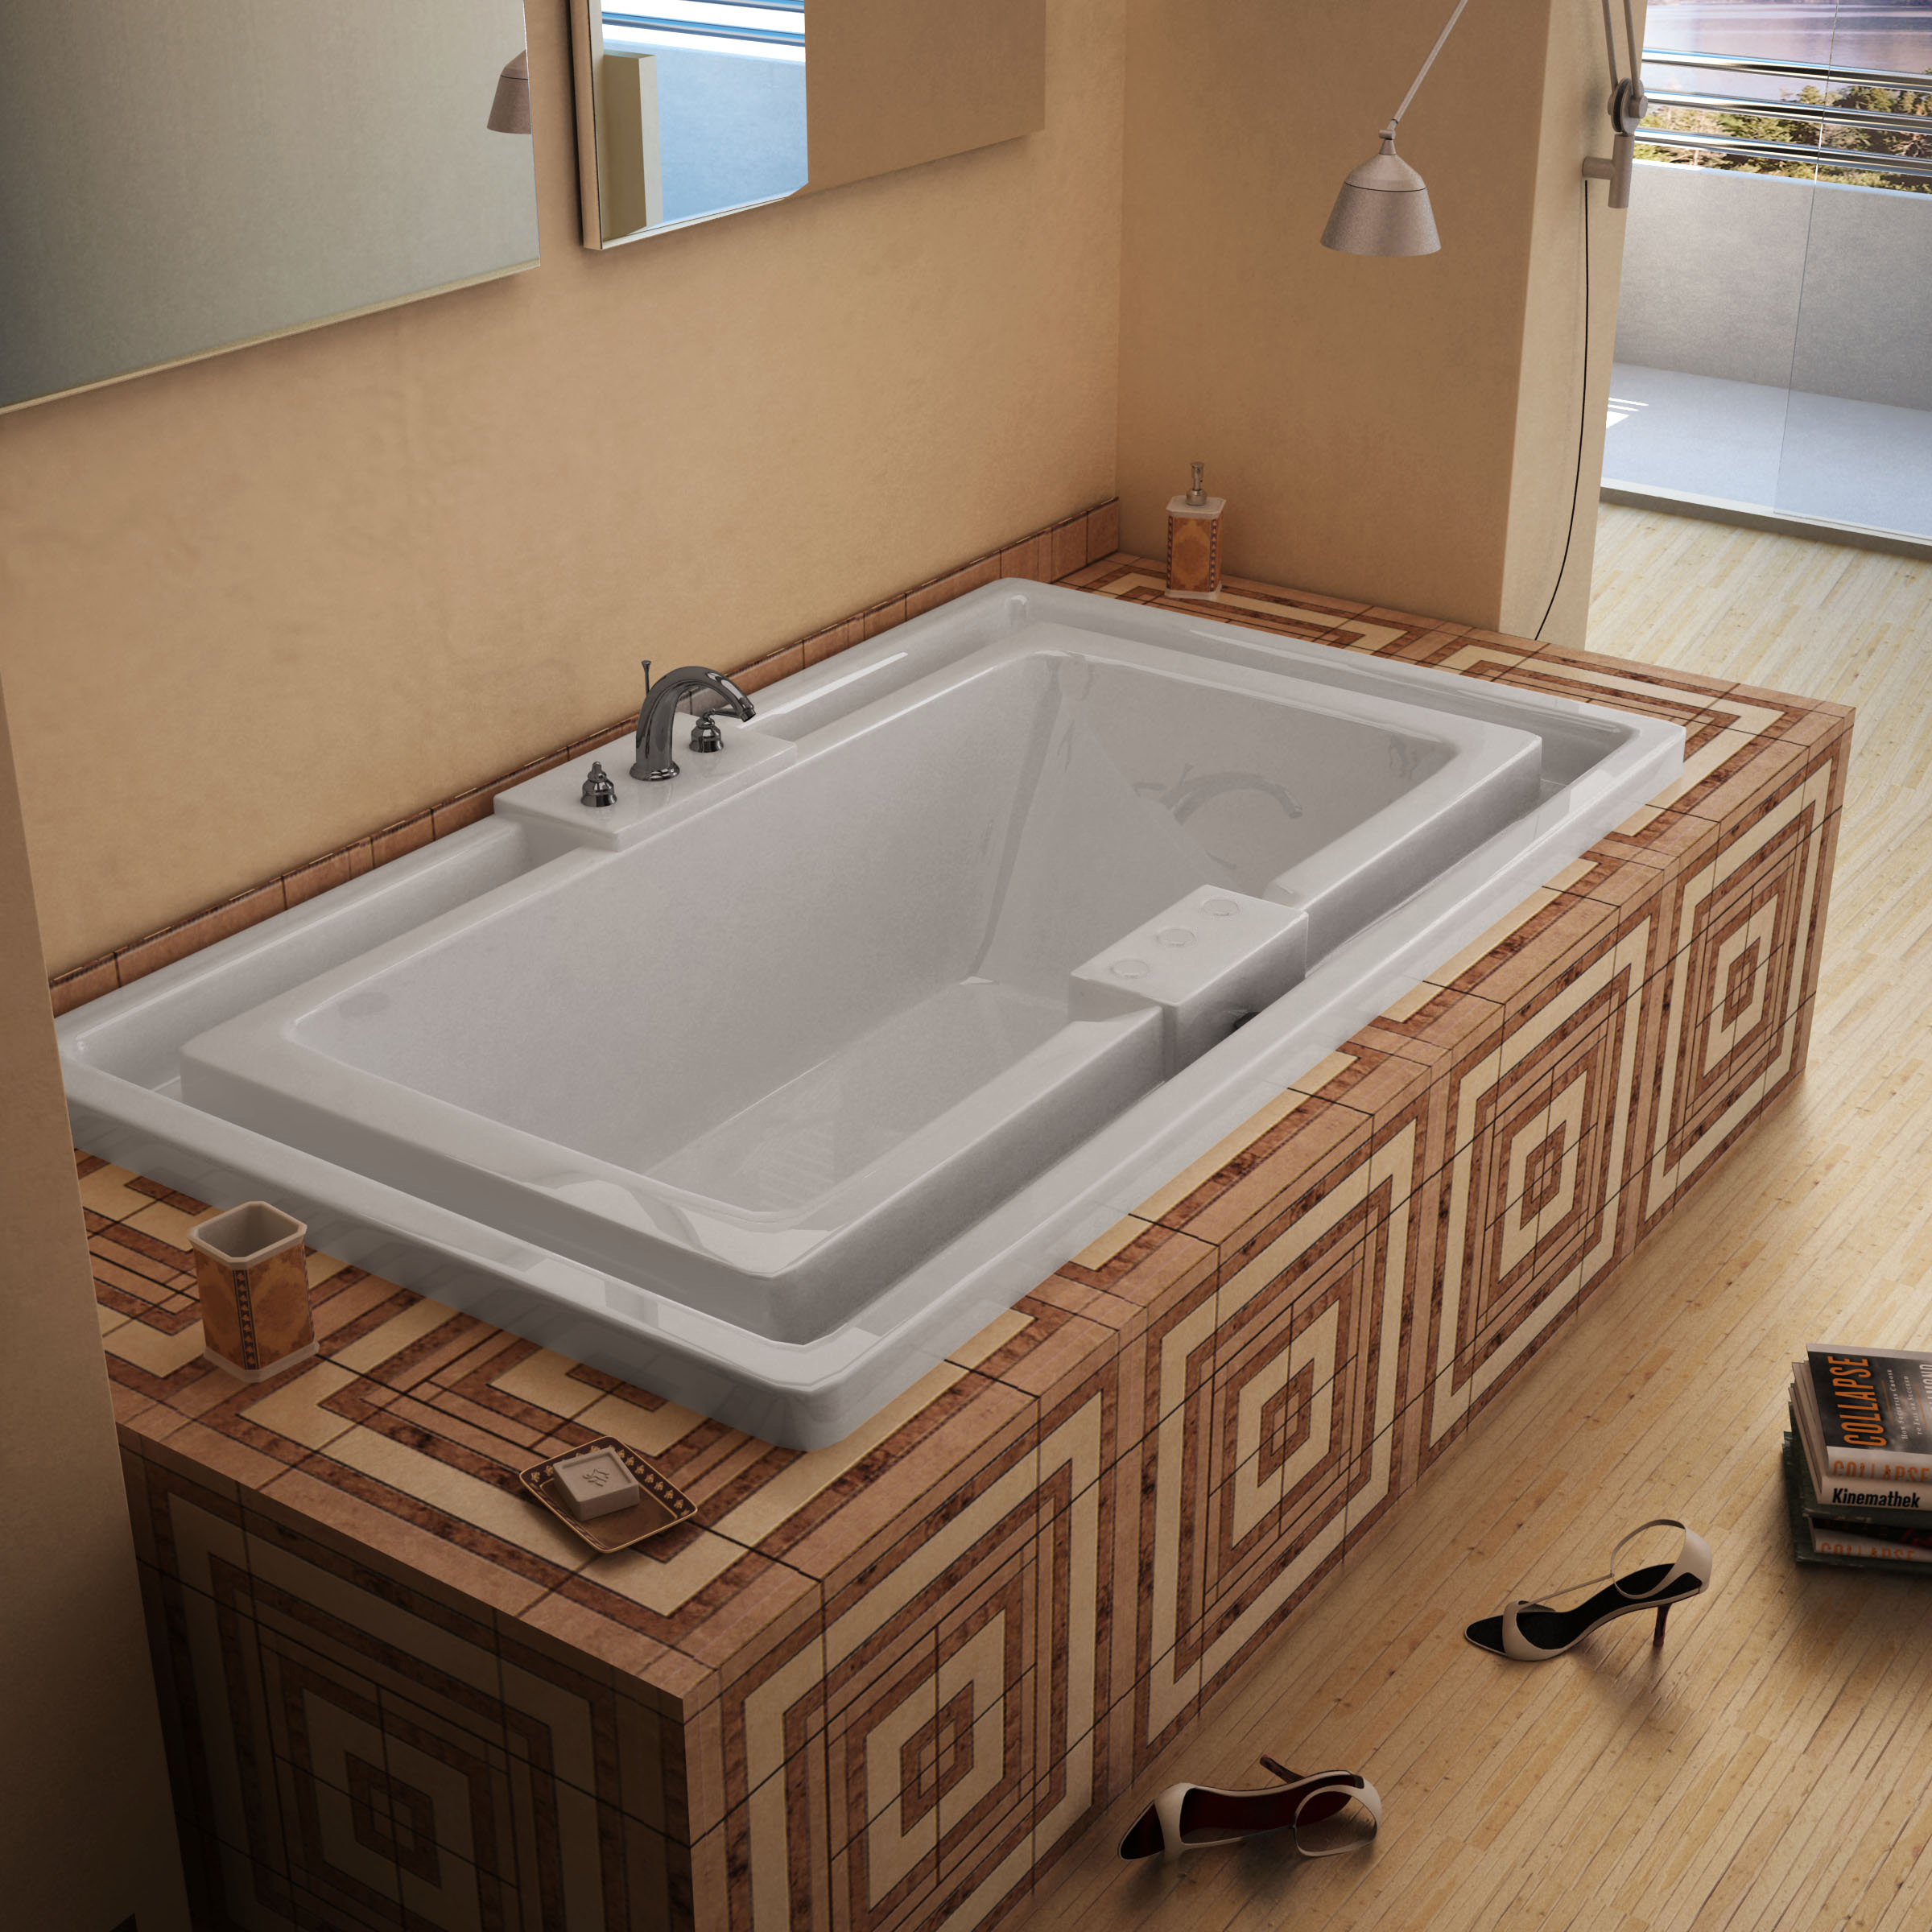 Celio 78 x 46 Endless Flow Bathtub with Center Drain